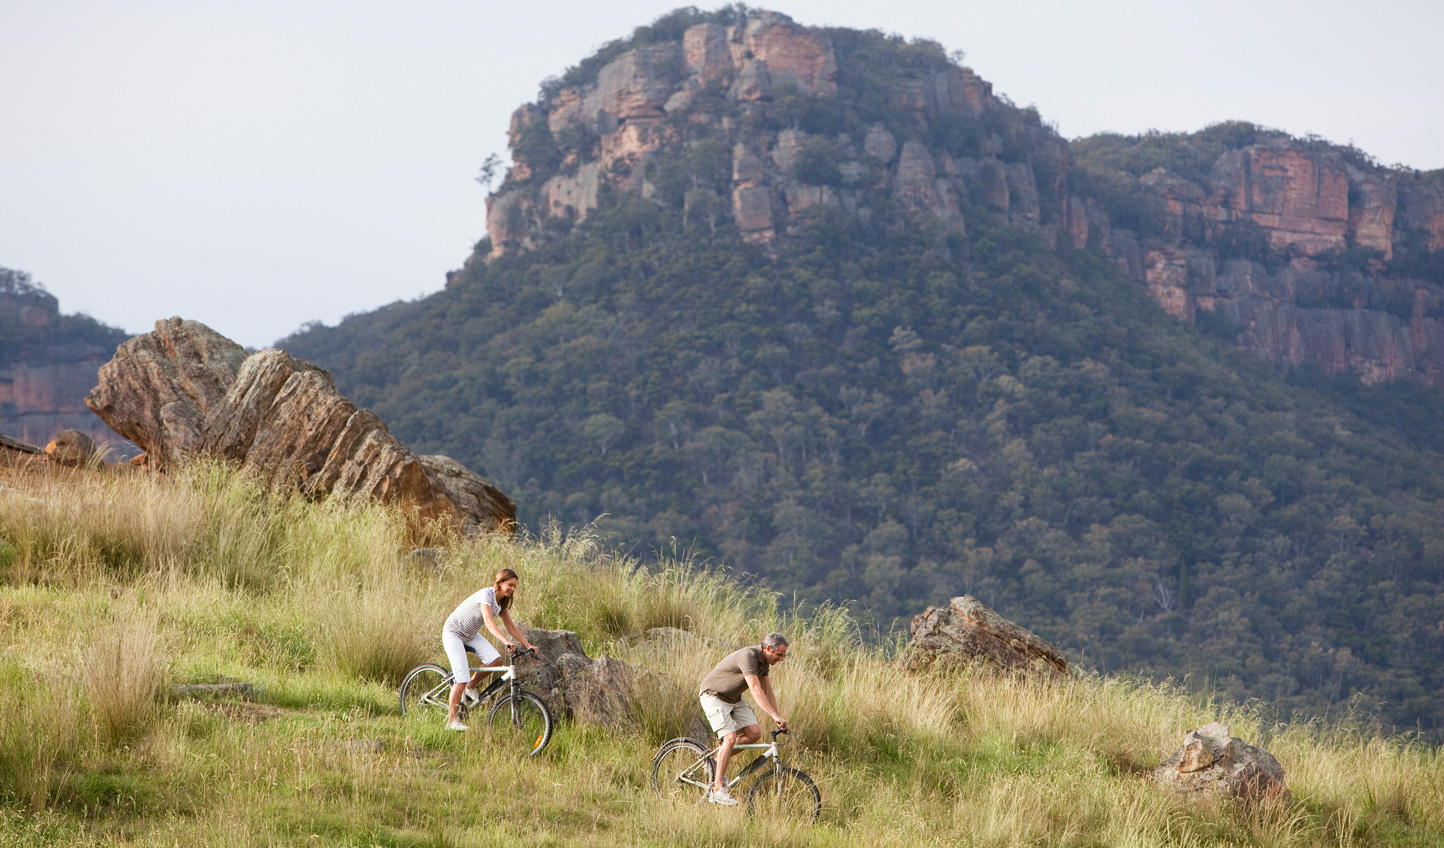 Tackle the valley terrain by mountain bike